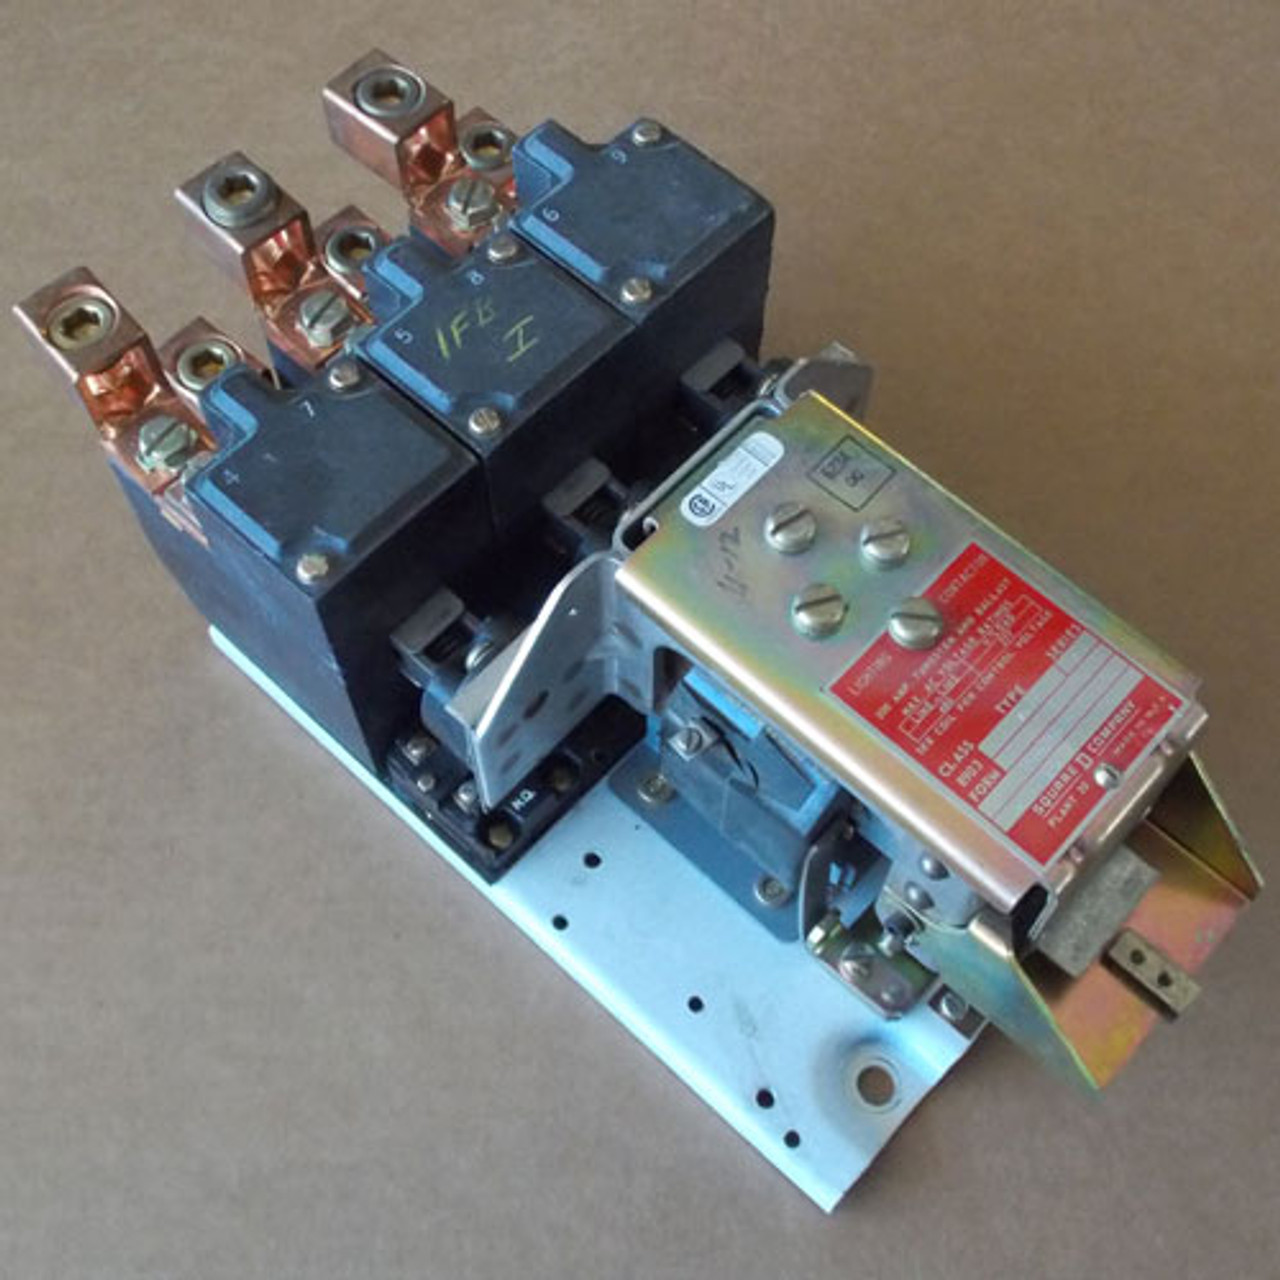 Square D 8903-VO11 3 Pole 200 Amp Lighting Contactor 208V Open - Used